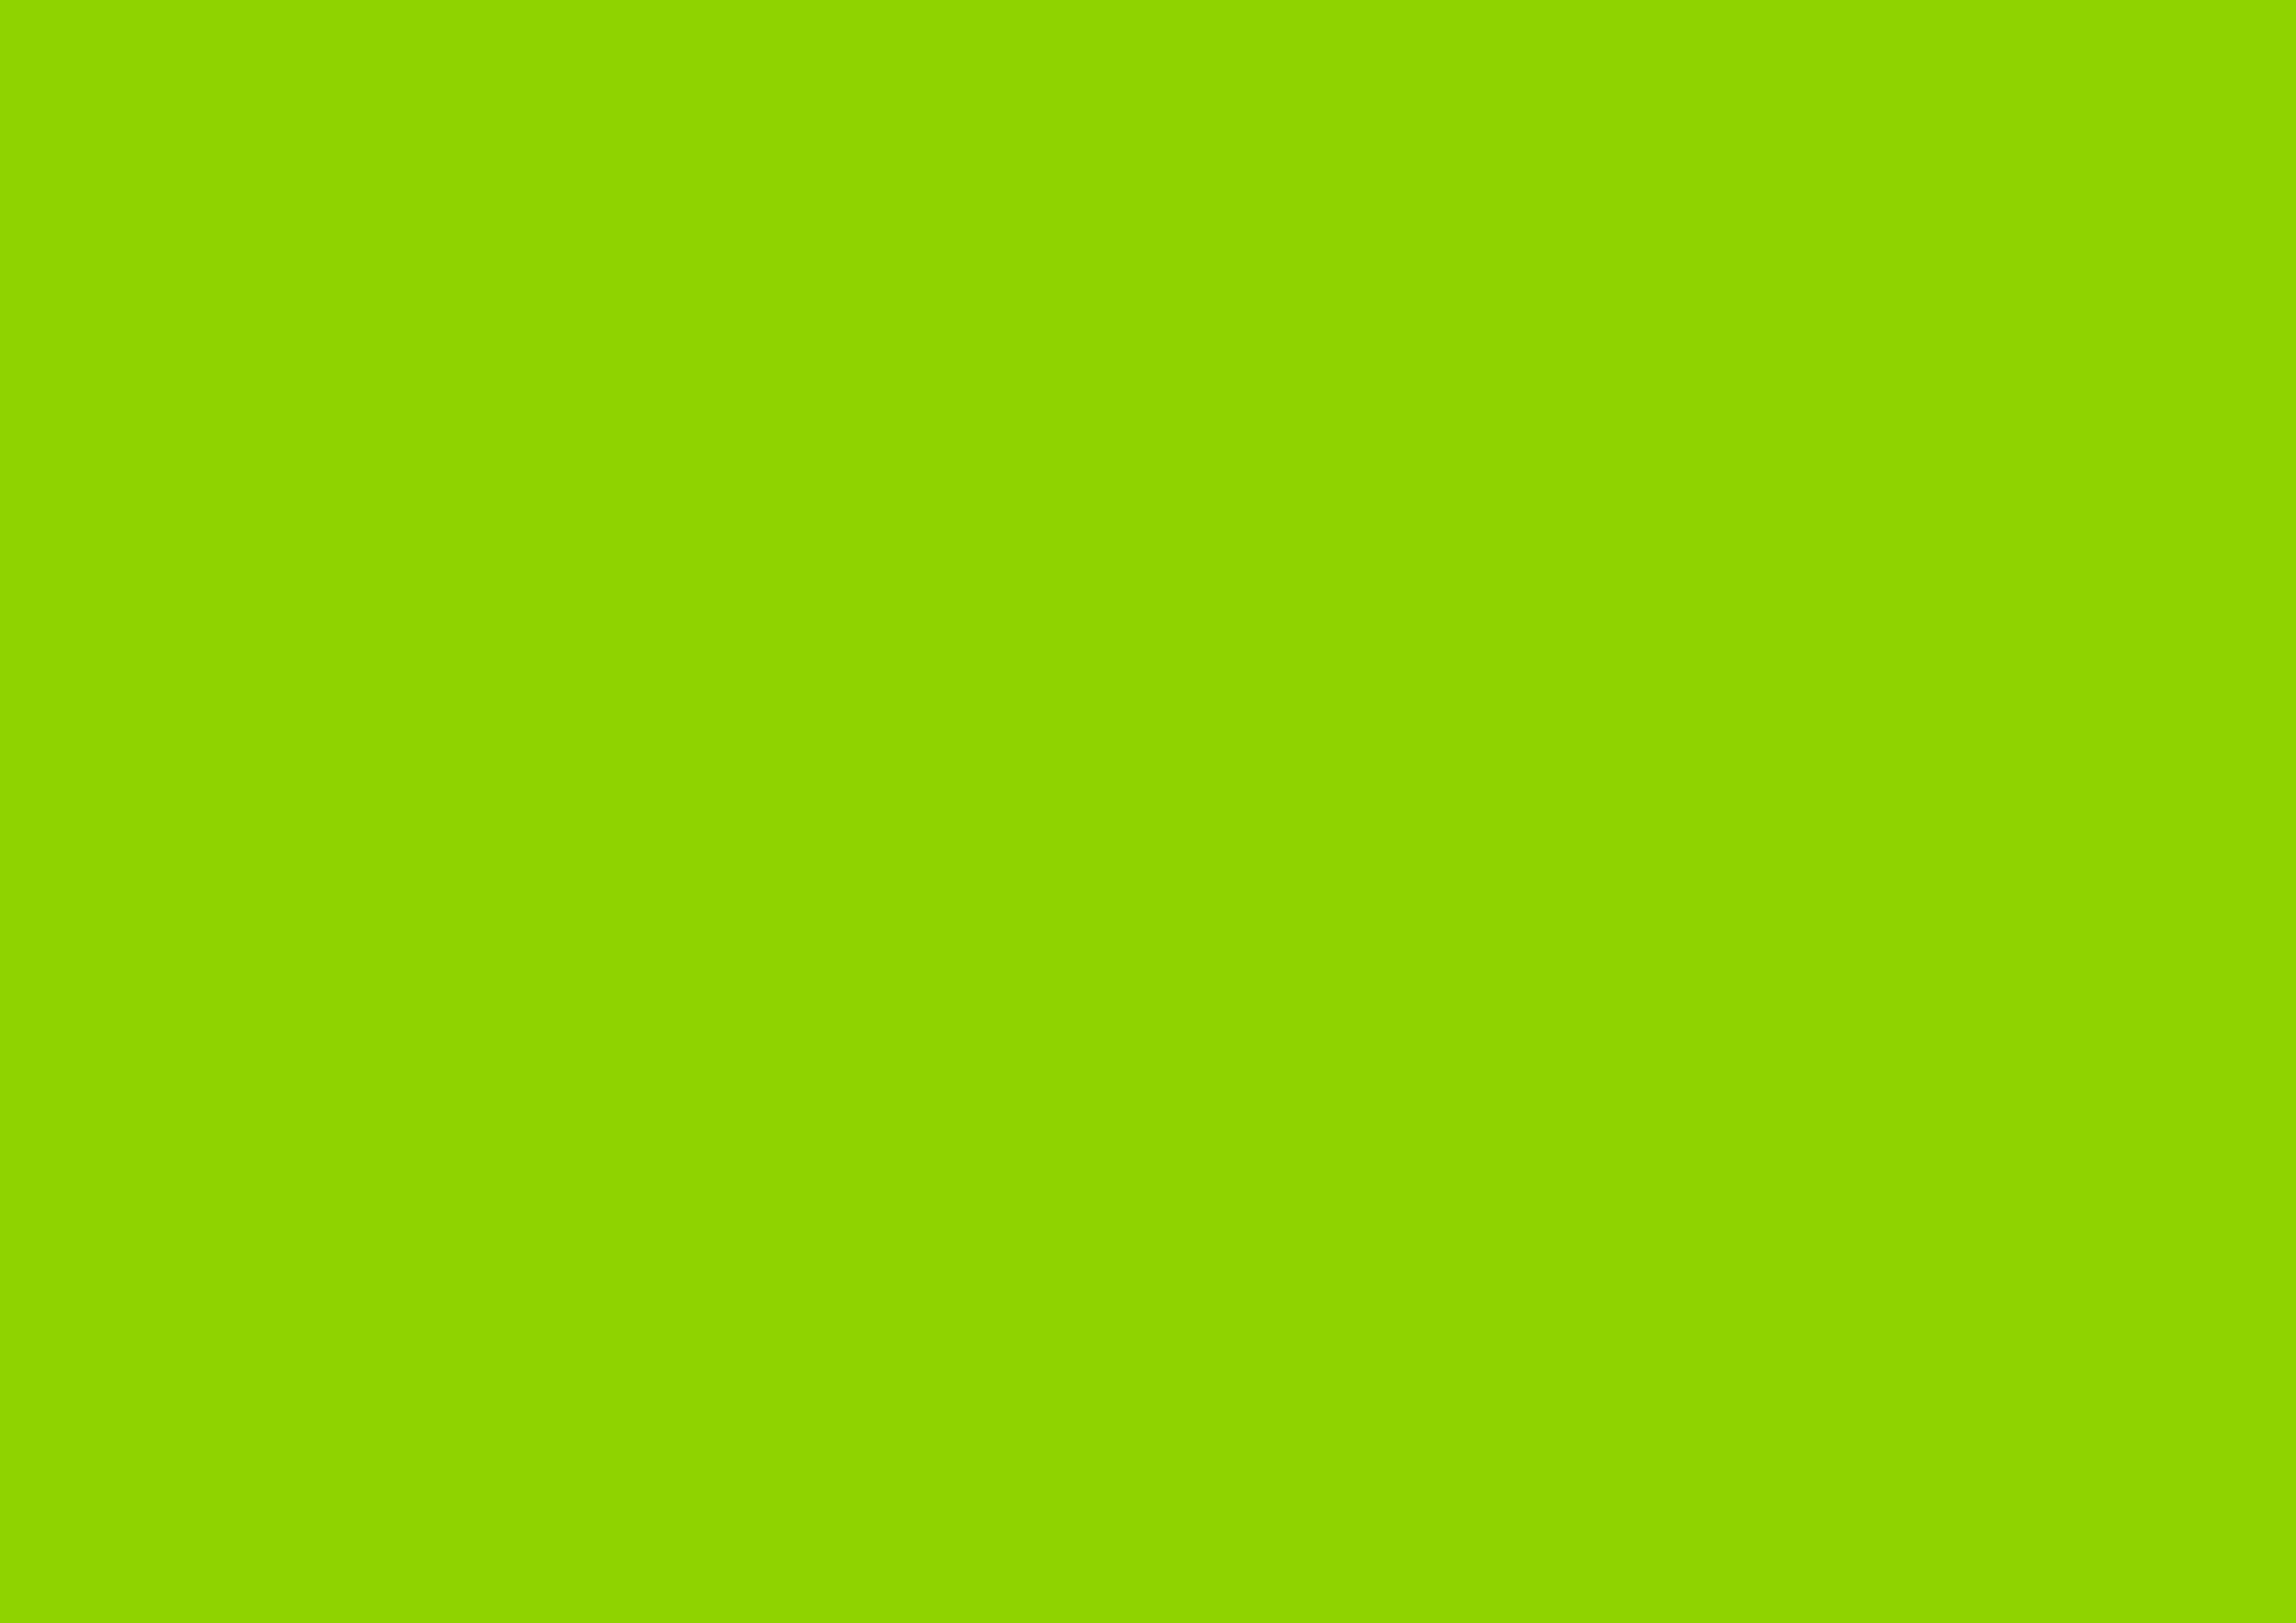 3508x2480 Sheen Green Solid Color Background